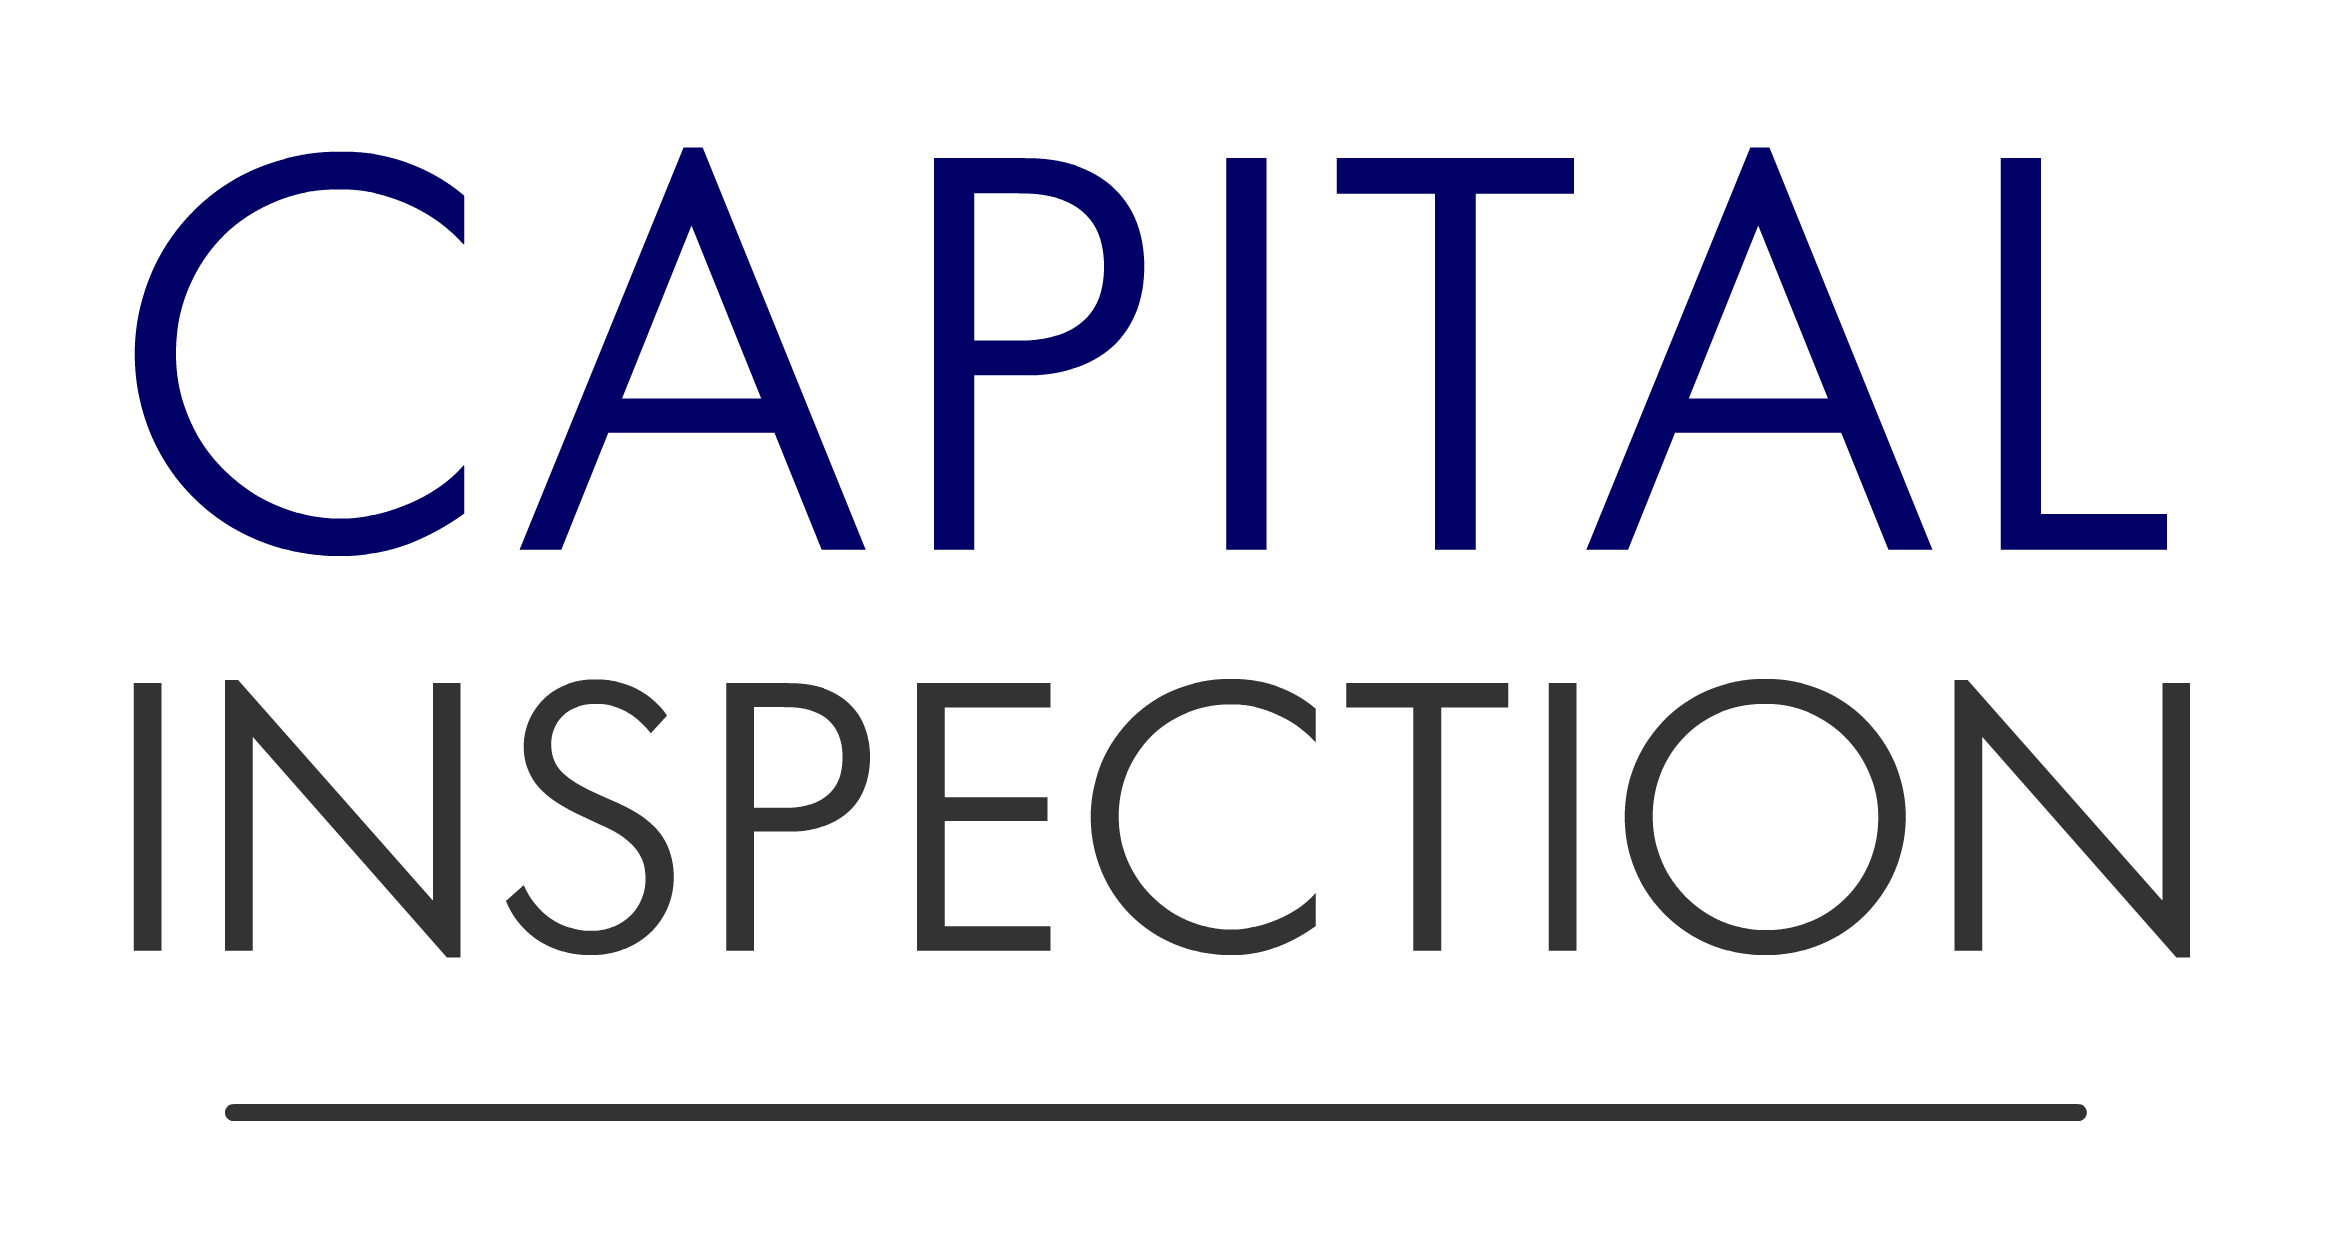 CapitalInspectionLogo.png